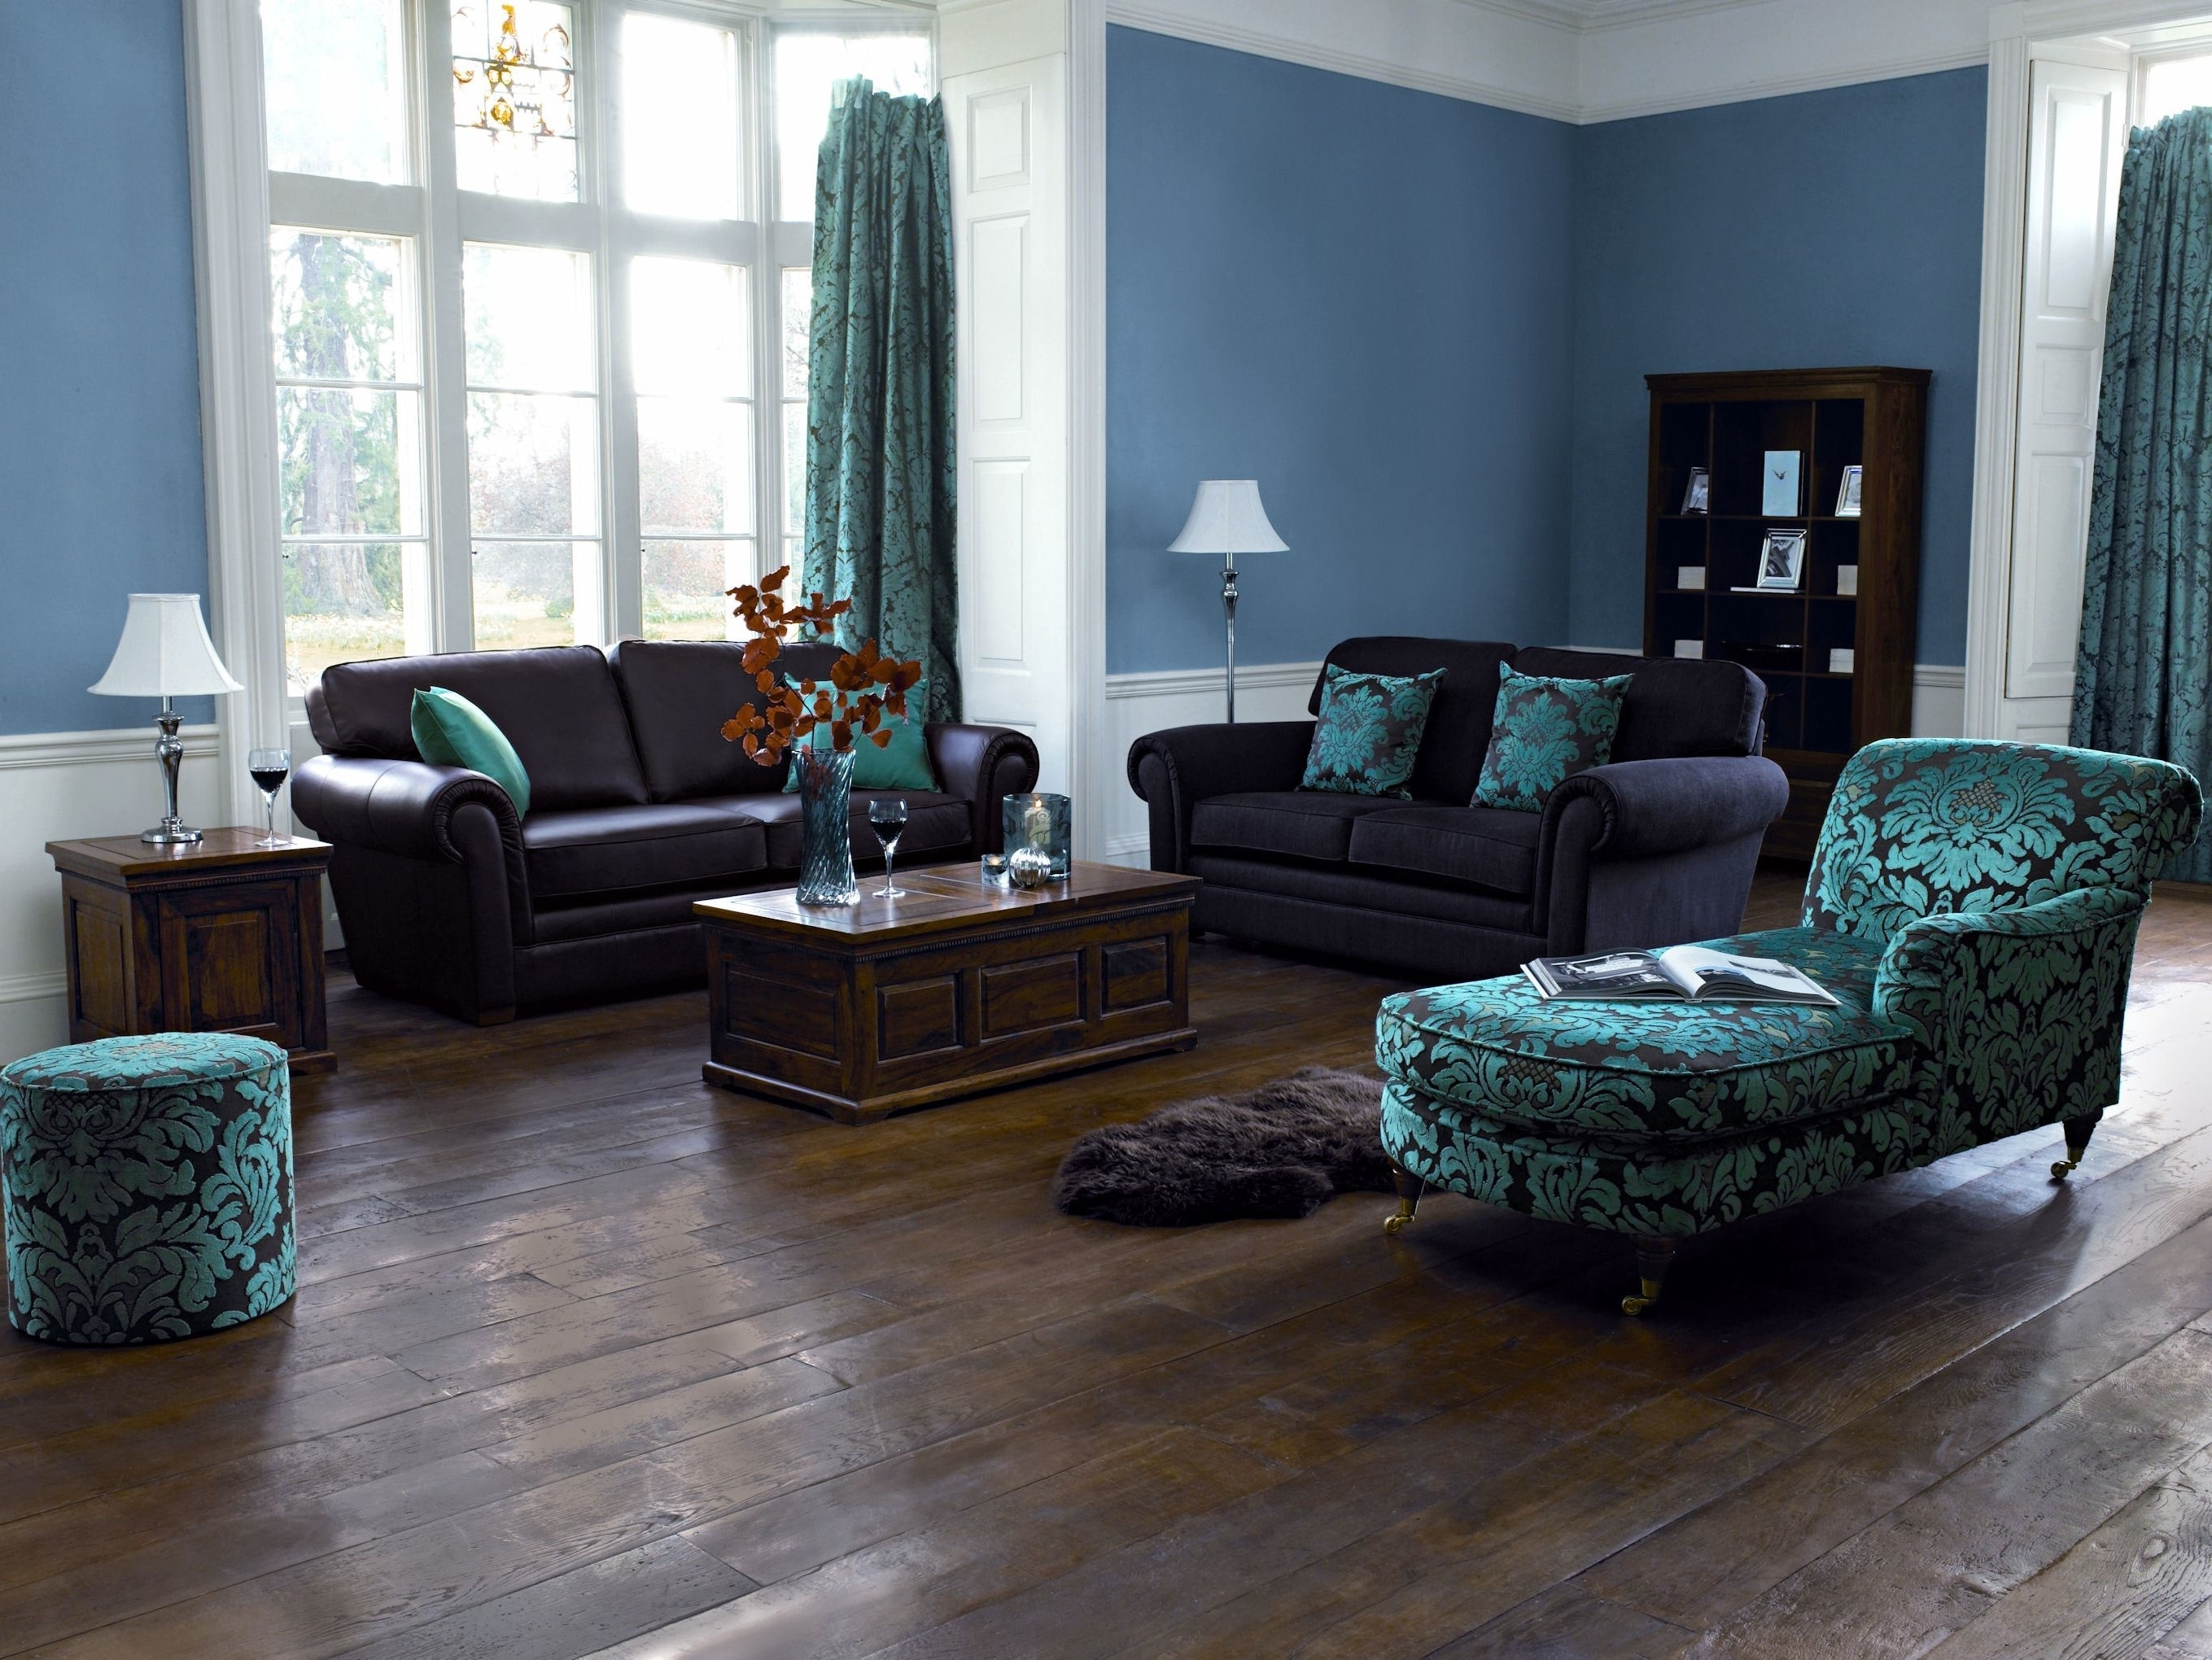 Living Room Chaise Lounge Chairs Inside Popular Luxury Chaise Lounge Chairs For Living Room X1 # (View 6 of 15)